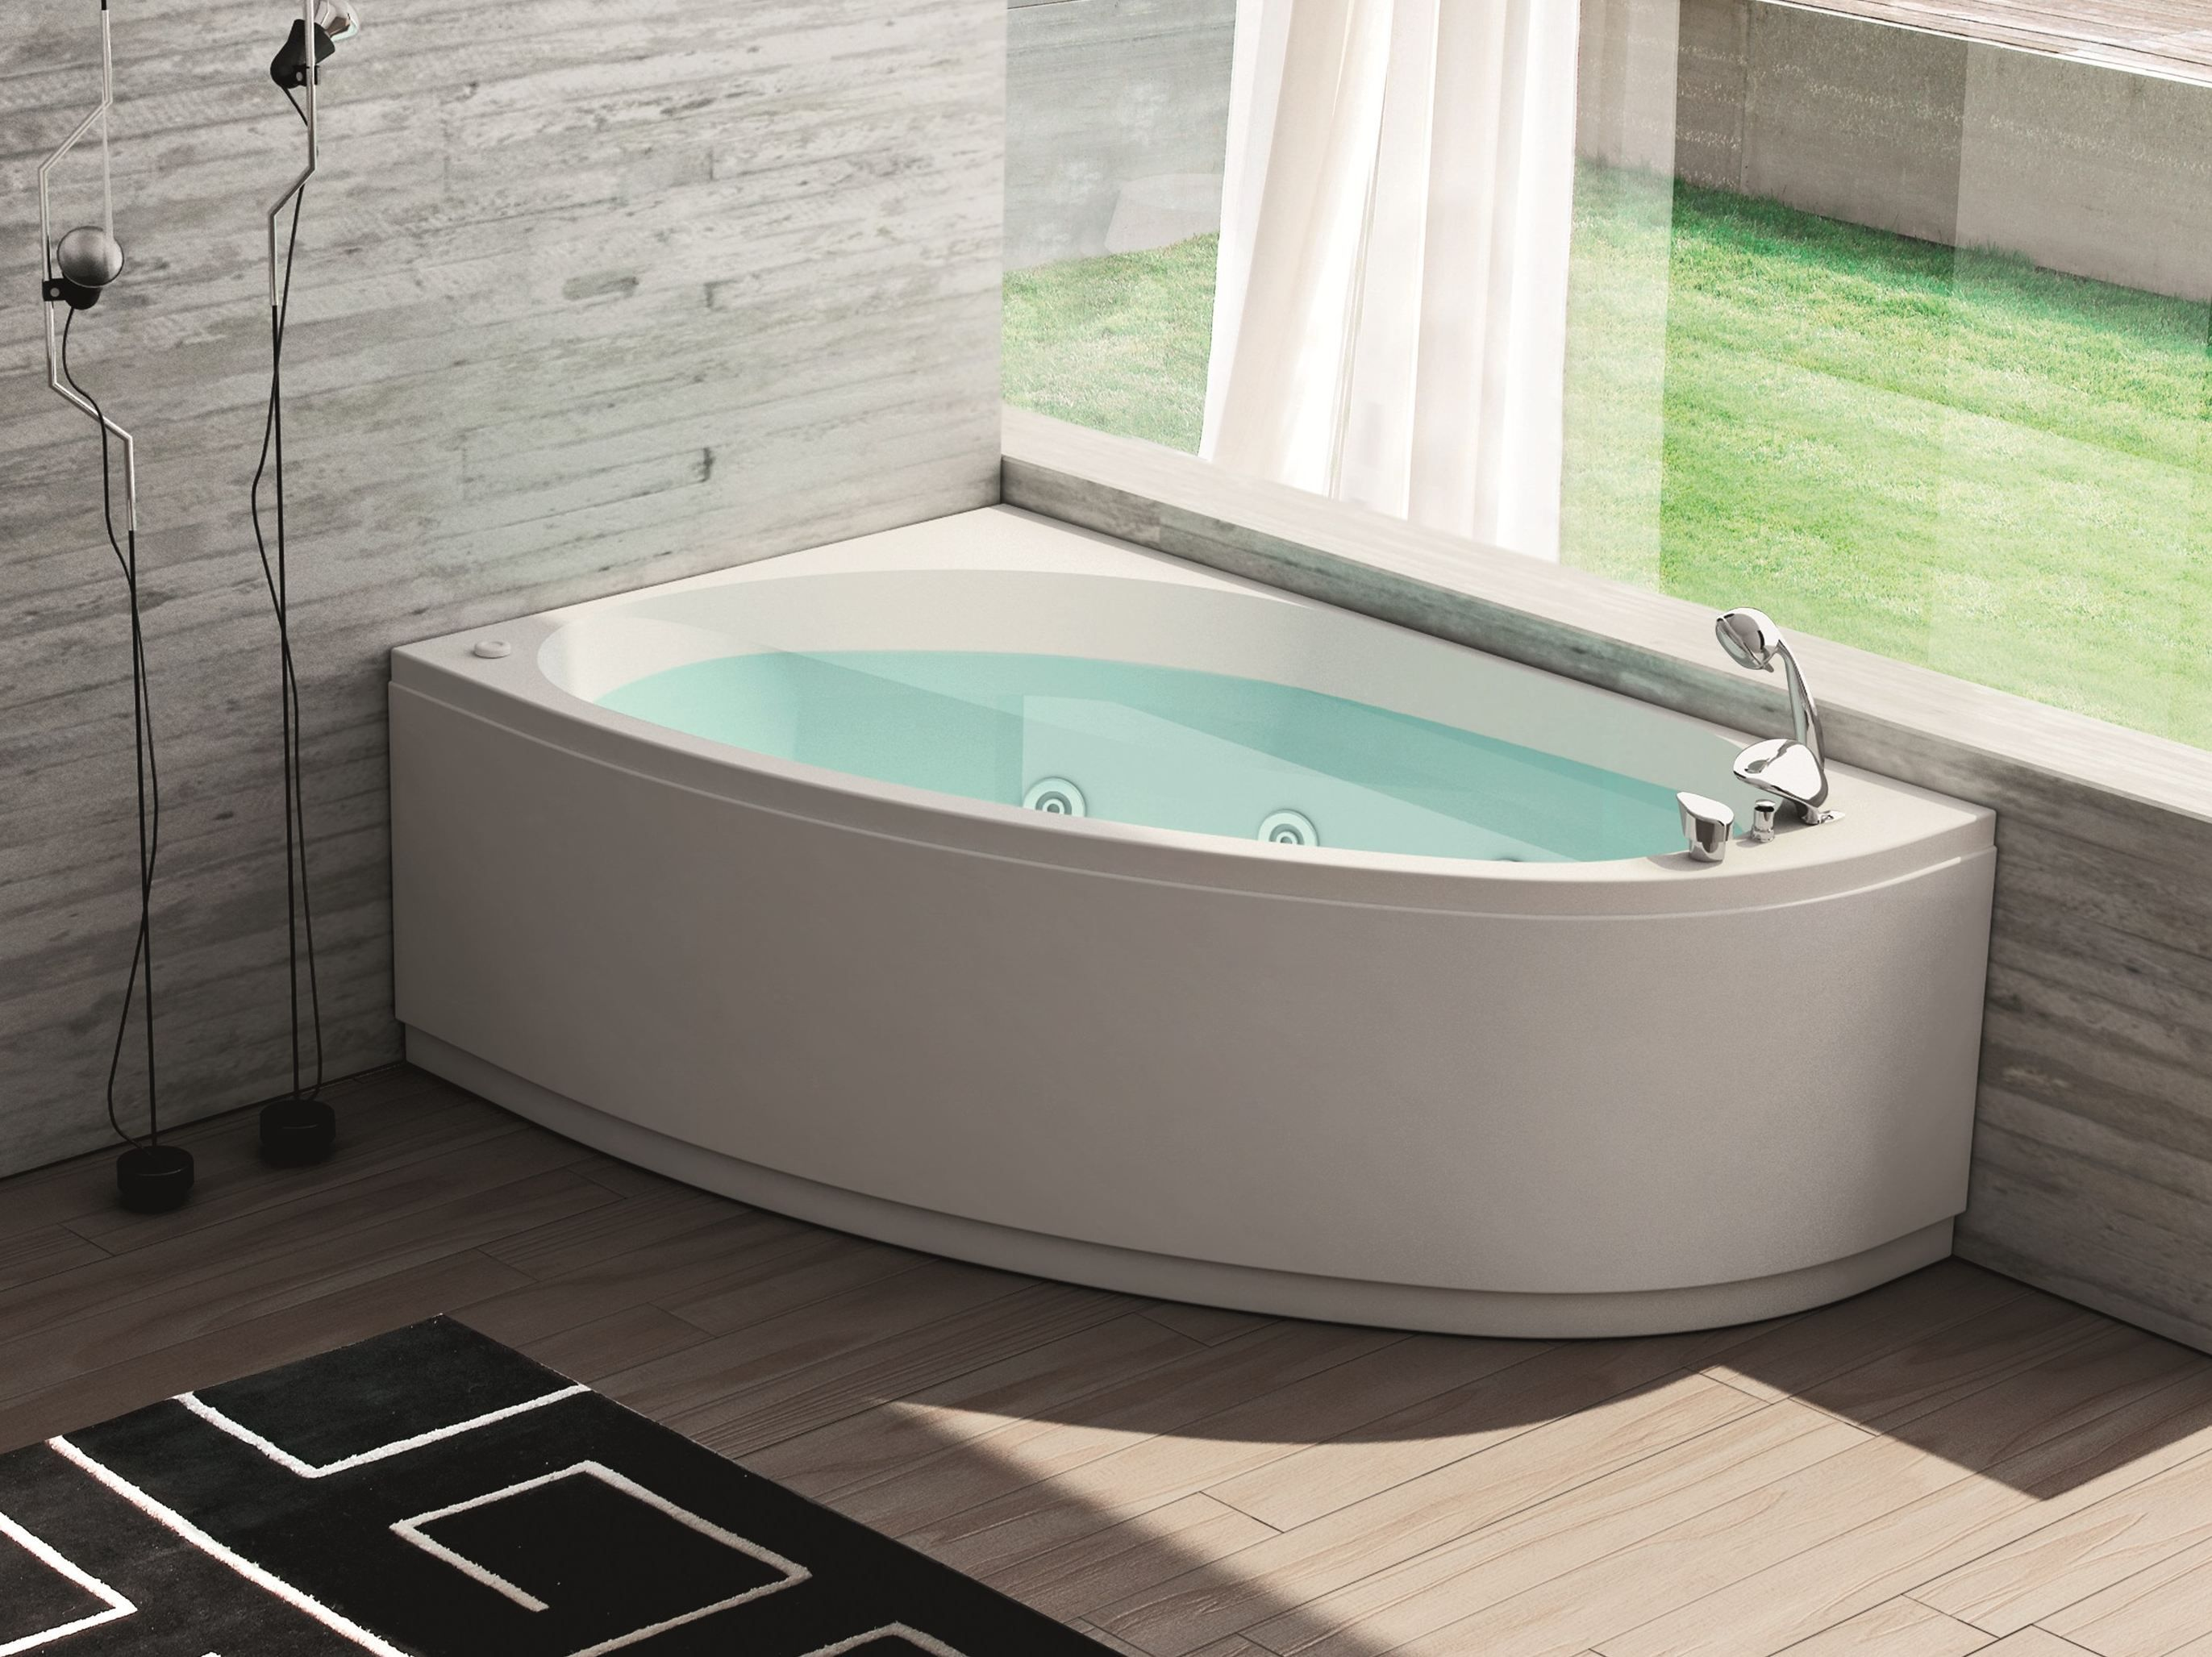 Upgrade Your Bathroom with Whirlpool Tub Modern Floor Lamp And